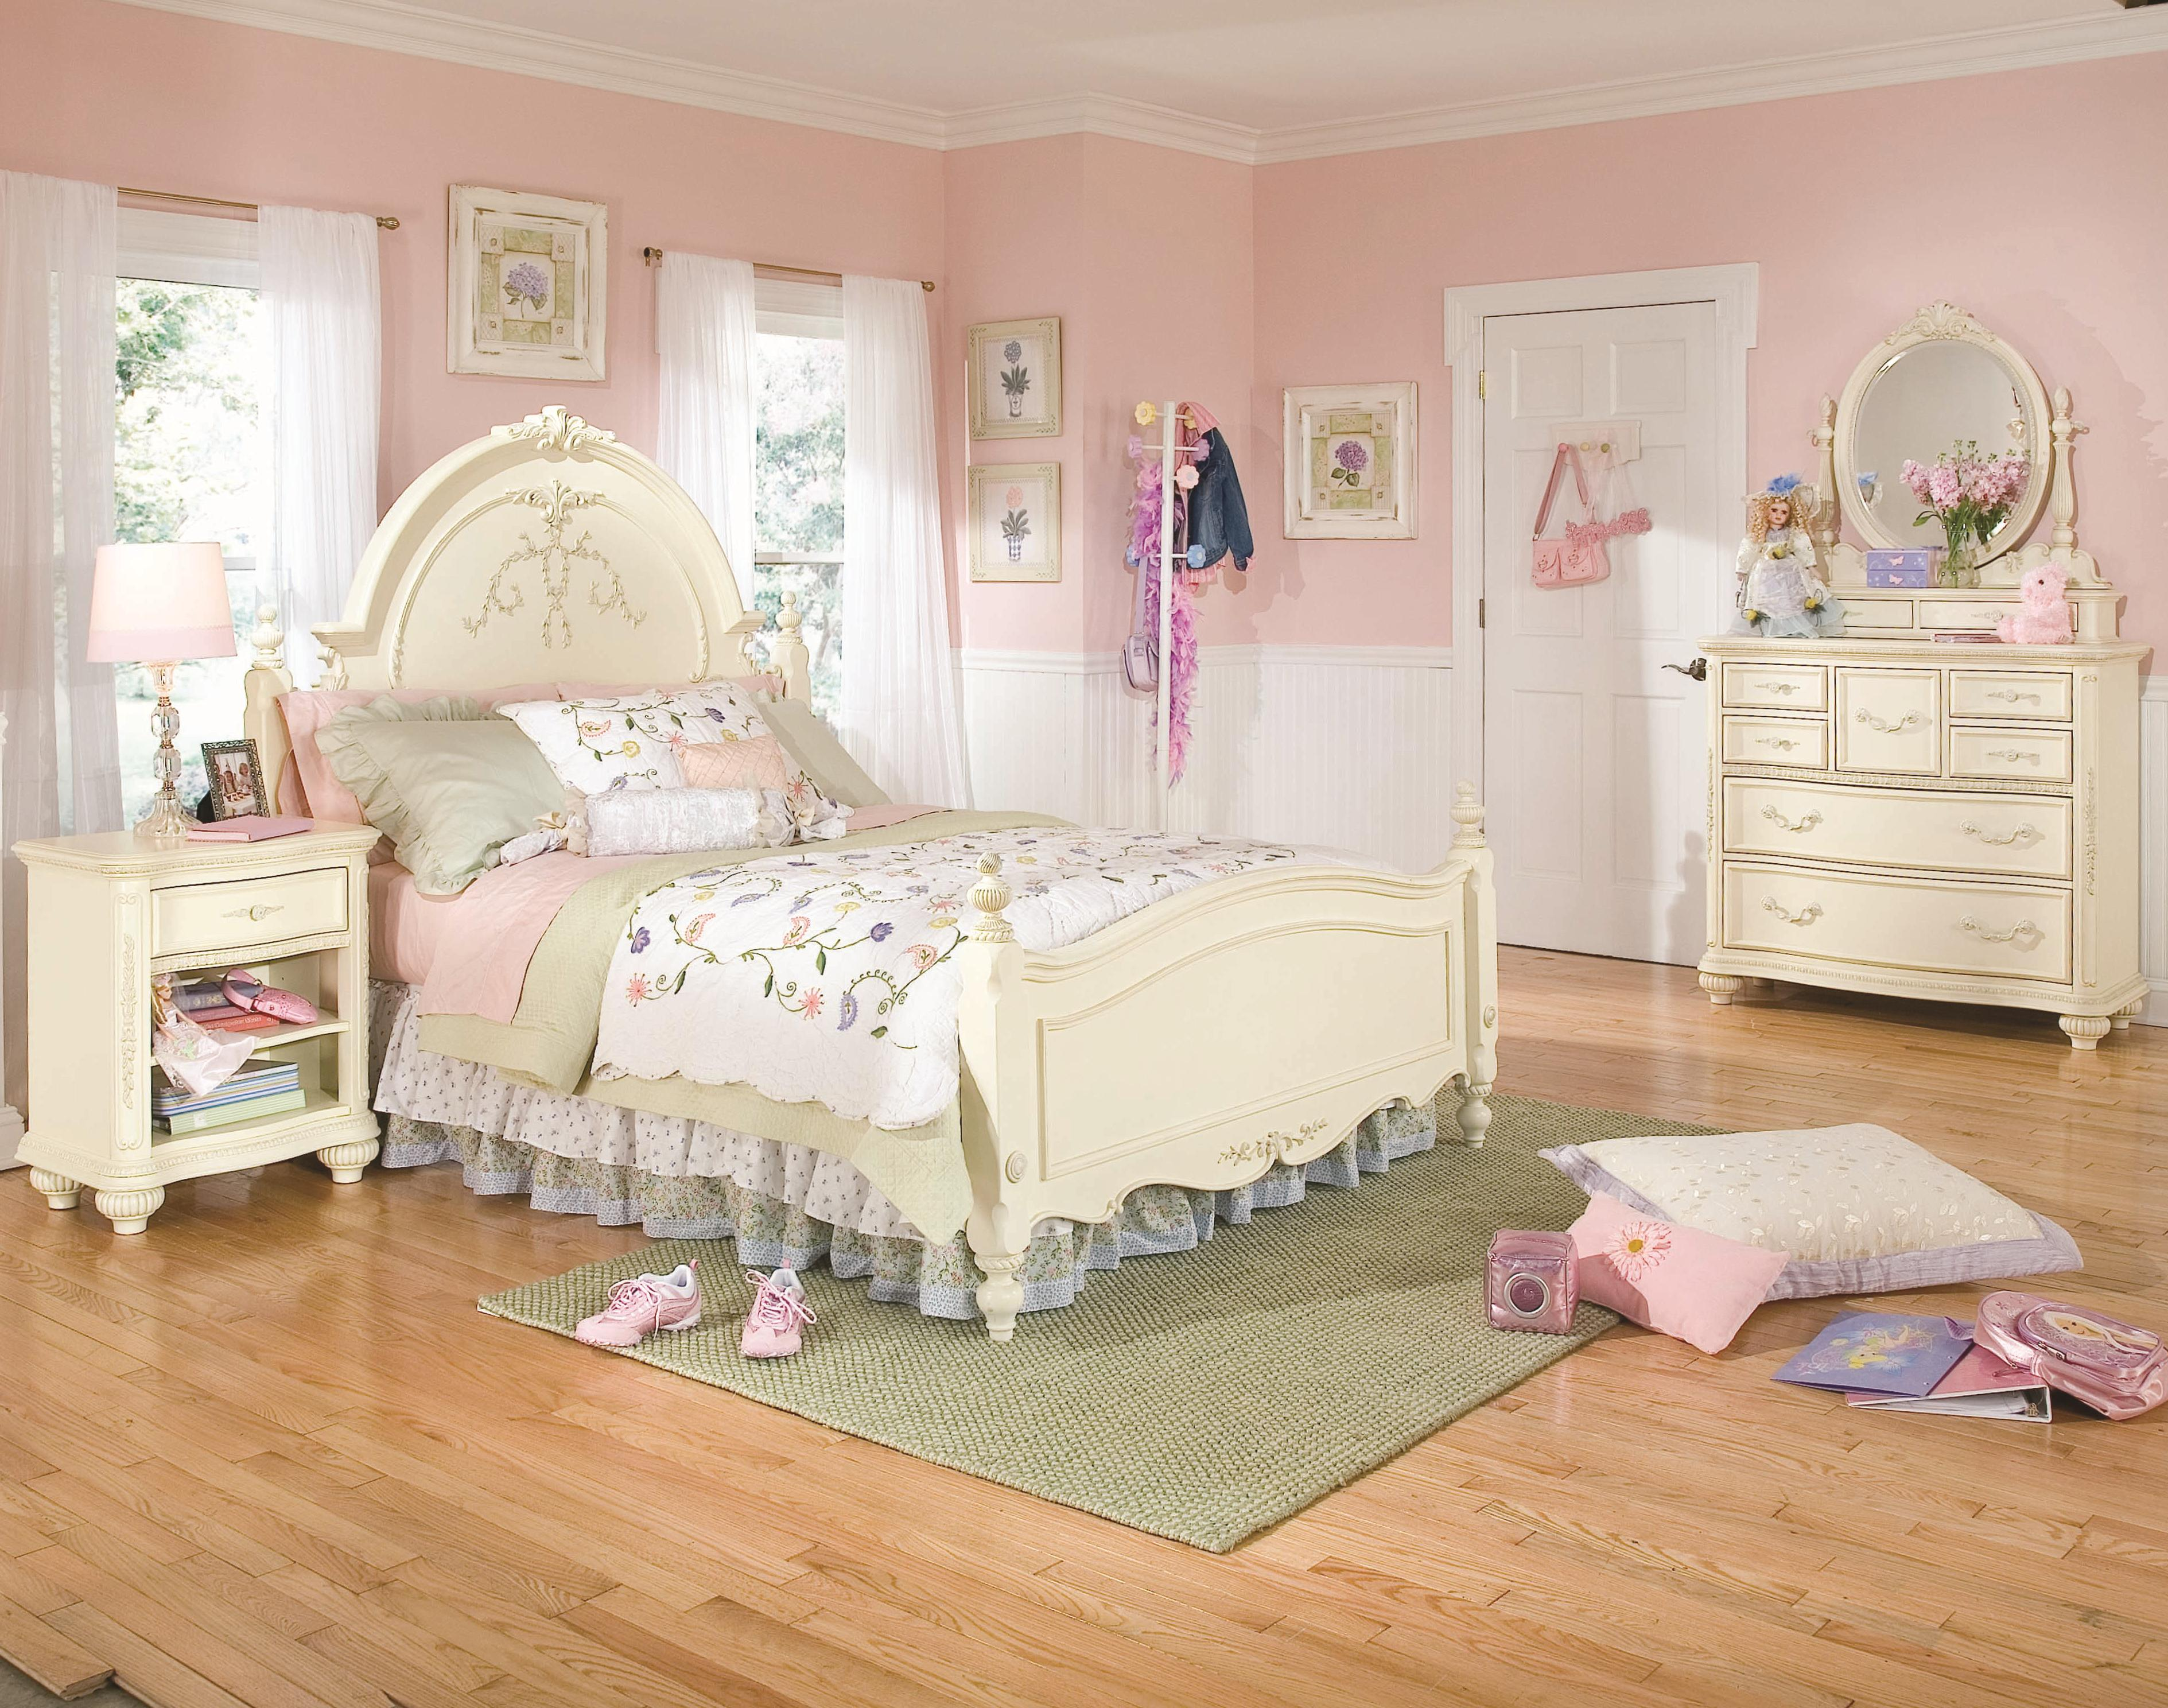 Lea Industries Jessica McClintock Romance Twin-Size Traditional Sleigh Bed  with Decorative Carving Details - BigFurnitureWebsite - Sleigh Bed